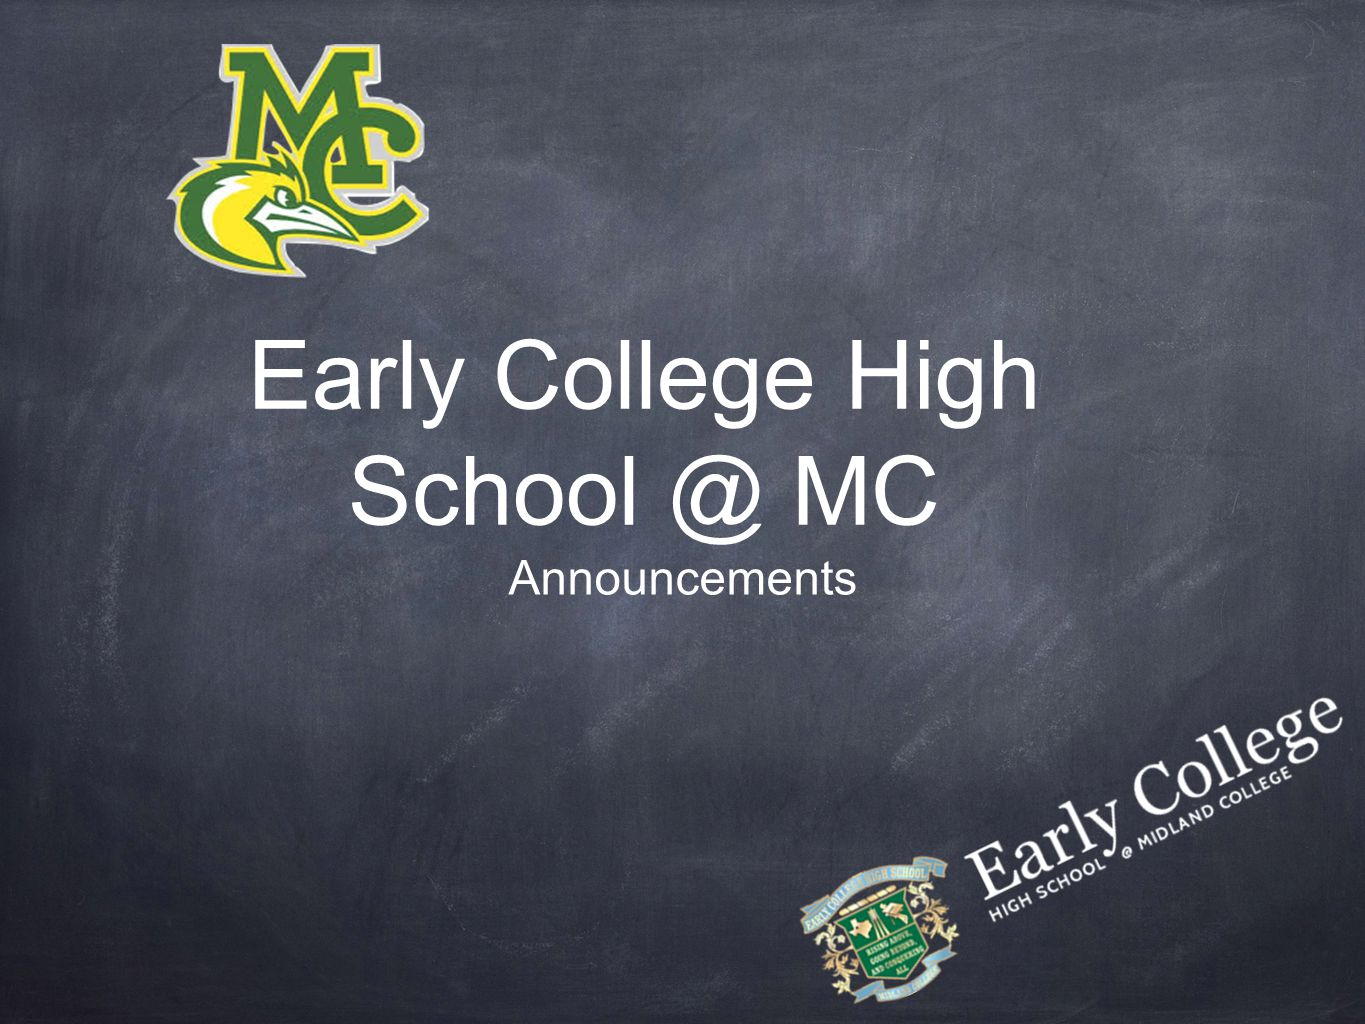 Early College High School @ MC Announcements